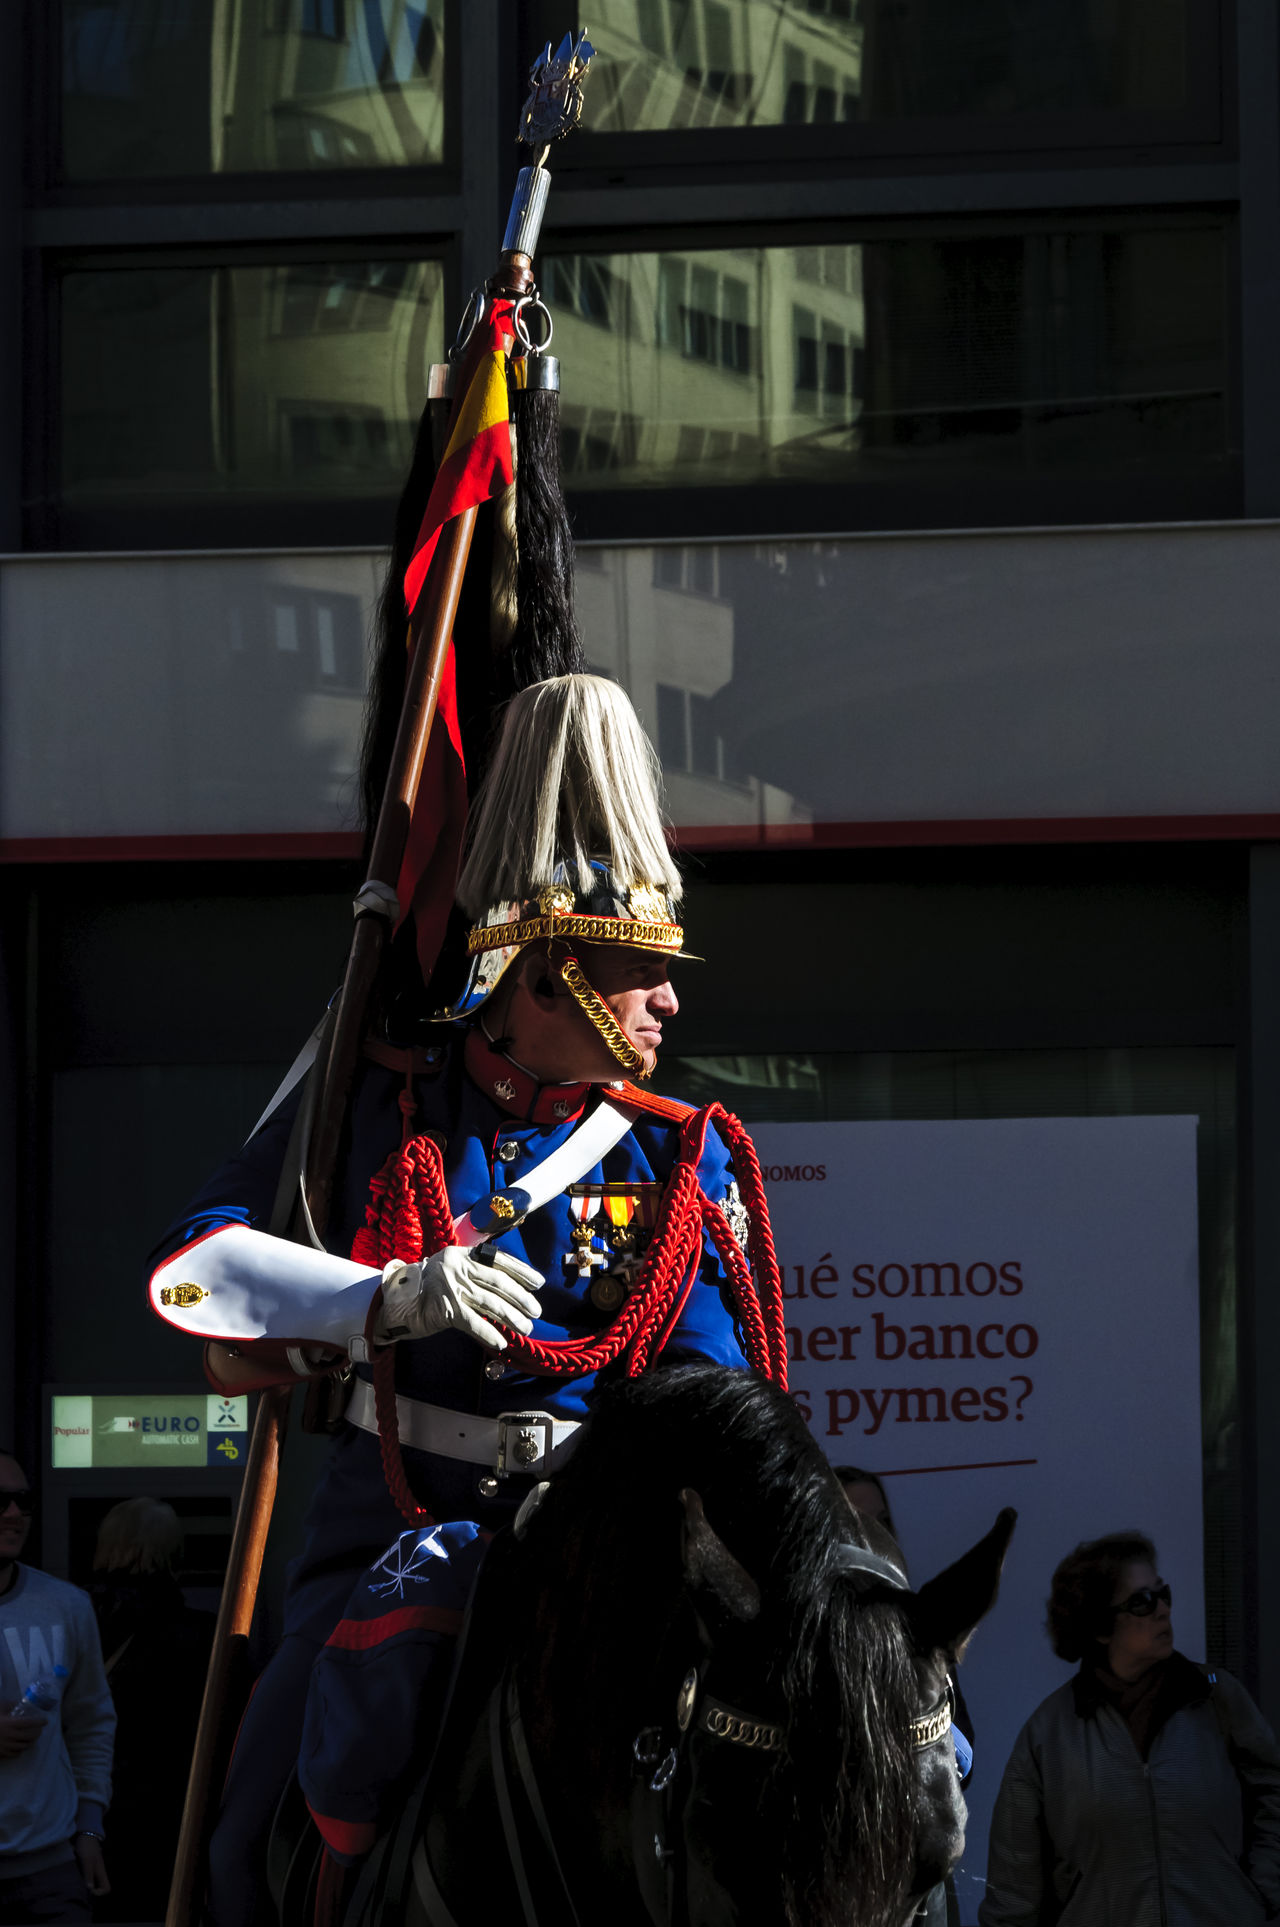 A half view of a Cavalery soldier mounted on a black horse. Animal Themes Cavalry Cavalry Soldier Day Editorial  Guard Horse Horse Riding Horses Light Mammal Military Mounted News People Shilouette Street Travel Uniform Uniforms